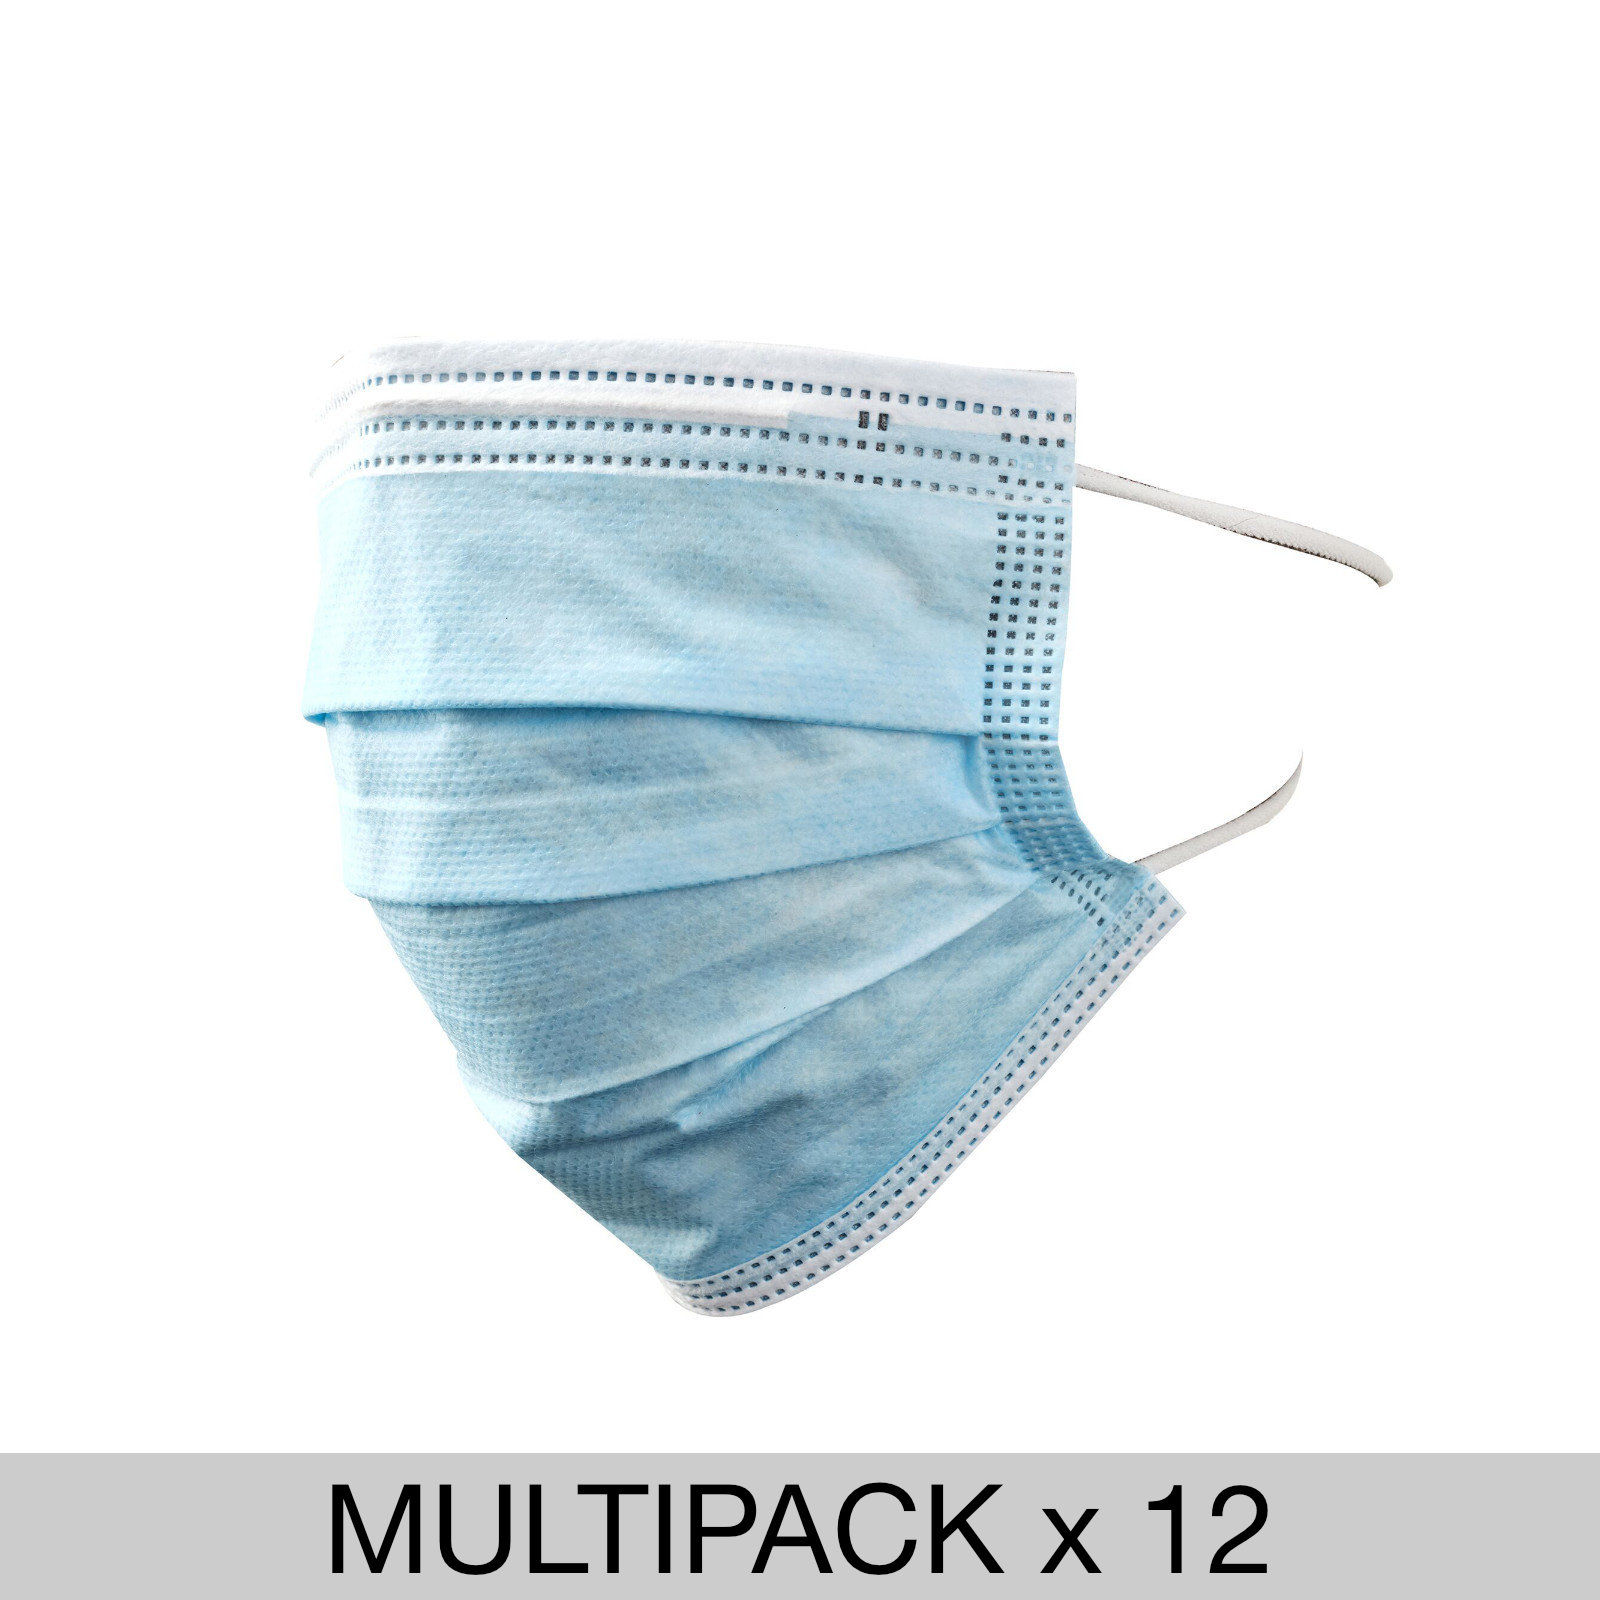 12 Pack 3 Ply Disposable Medical Face Mask (Class 1) - 50 Masks Per Box - Bulk Pack